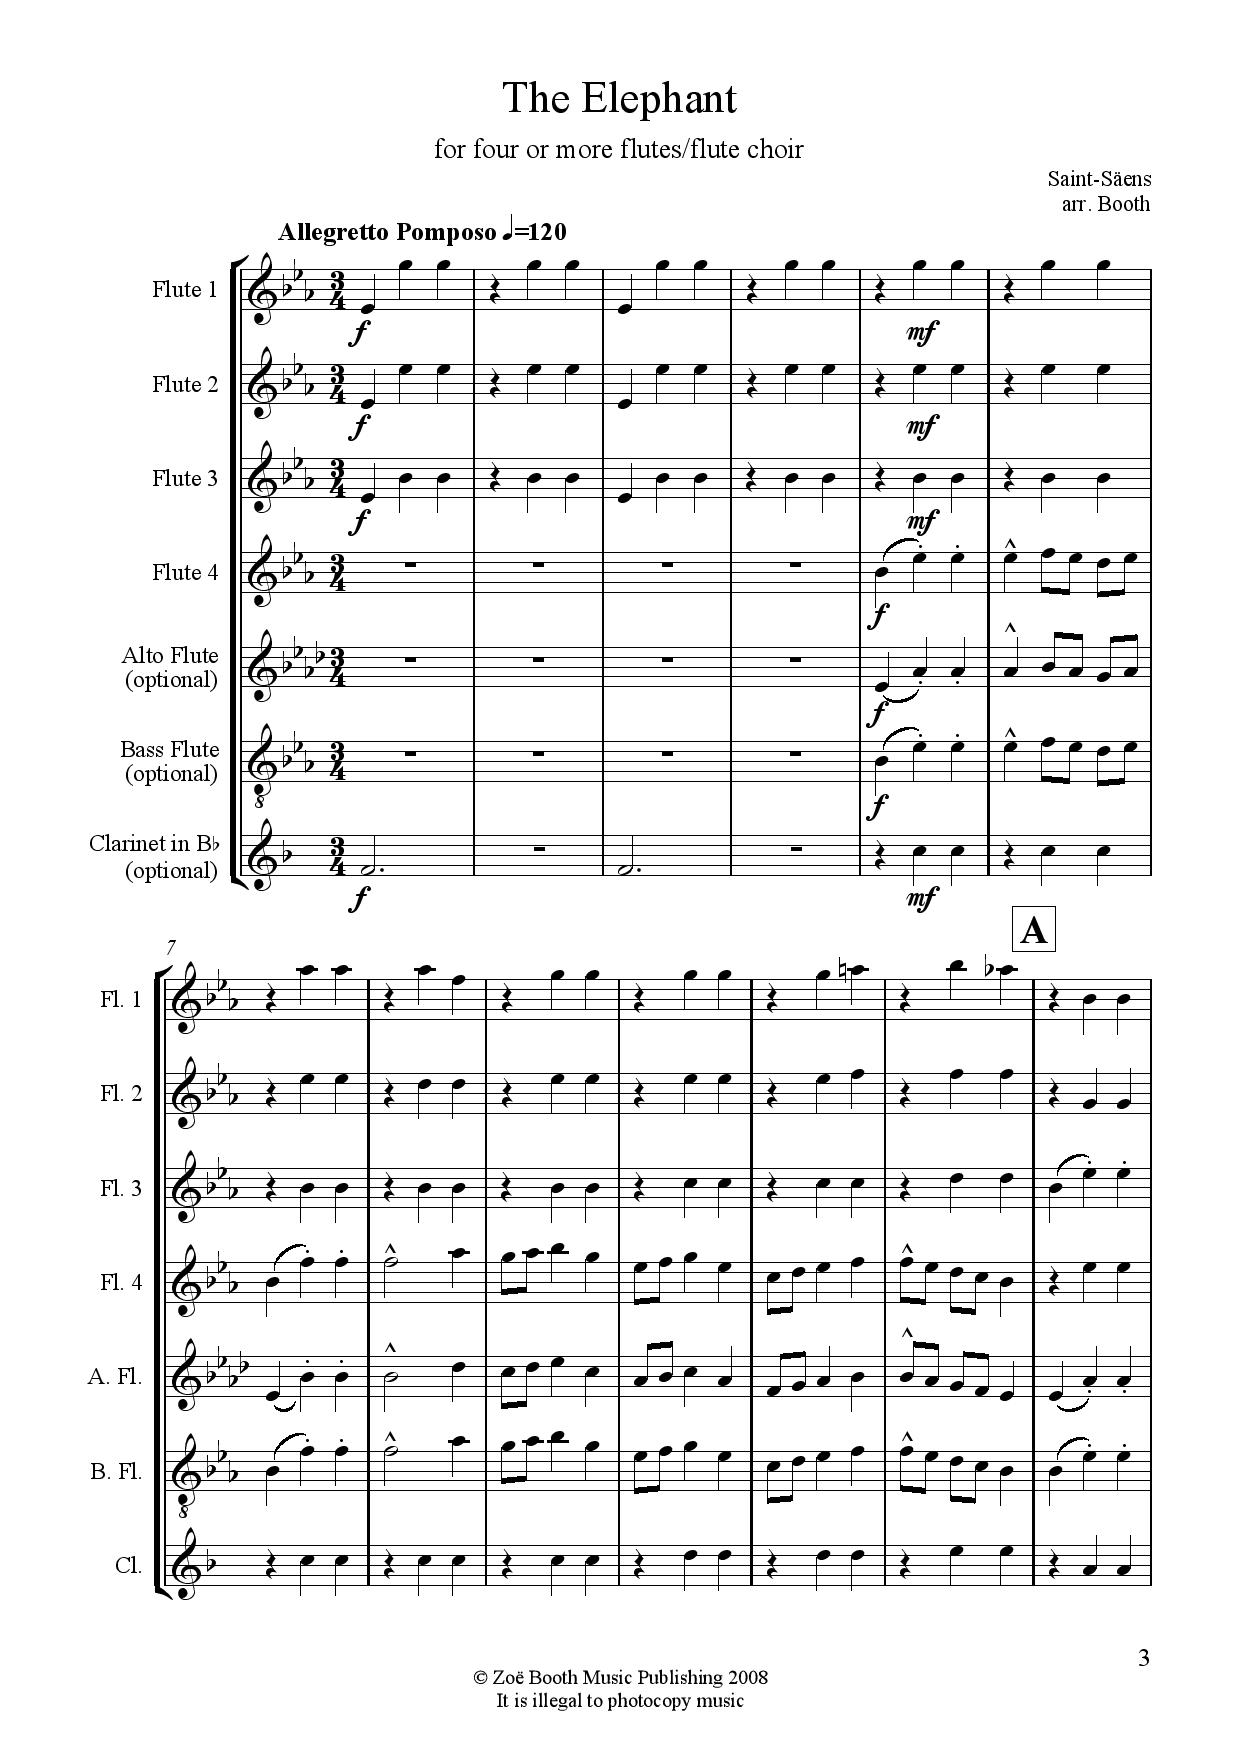 The Elephant by Saint-Saëns  arranged by Zoë Booth for four or more flutes/flute choir